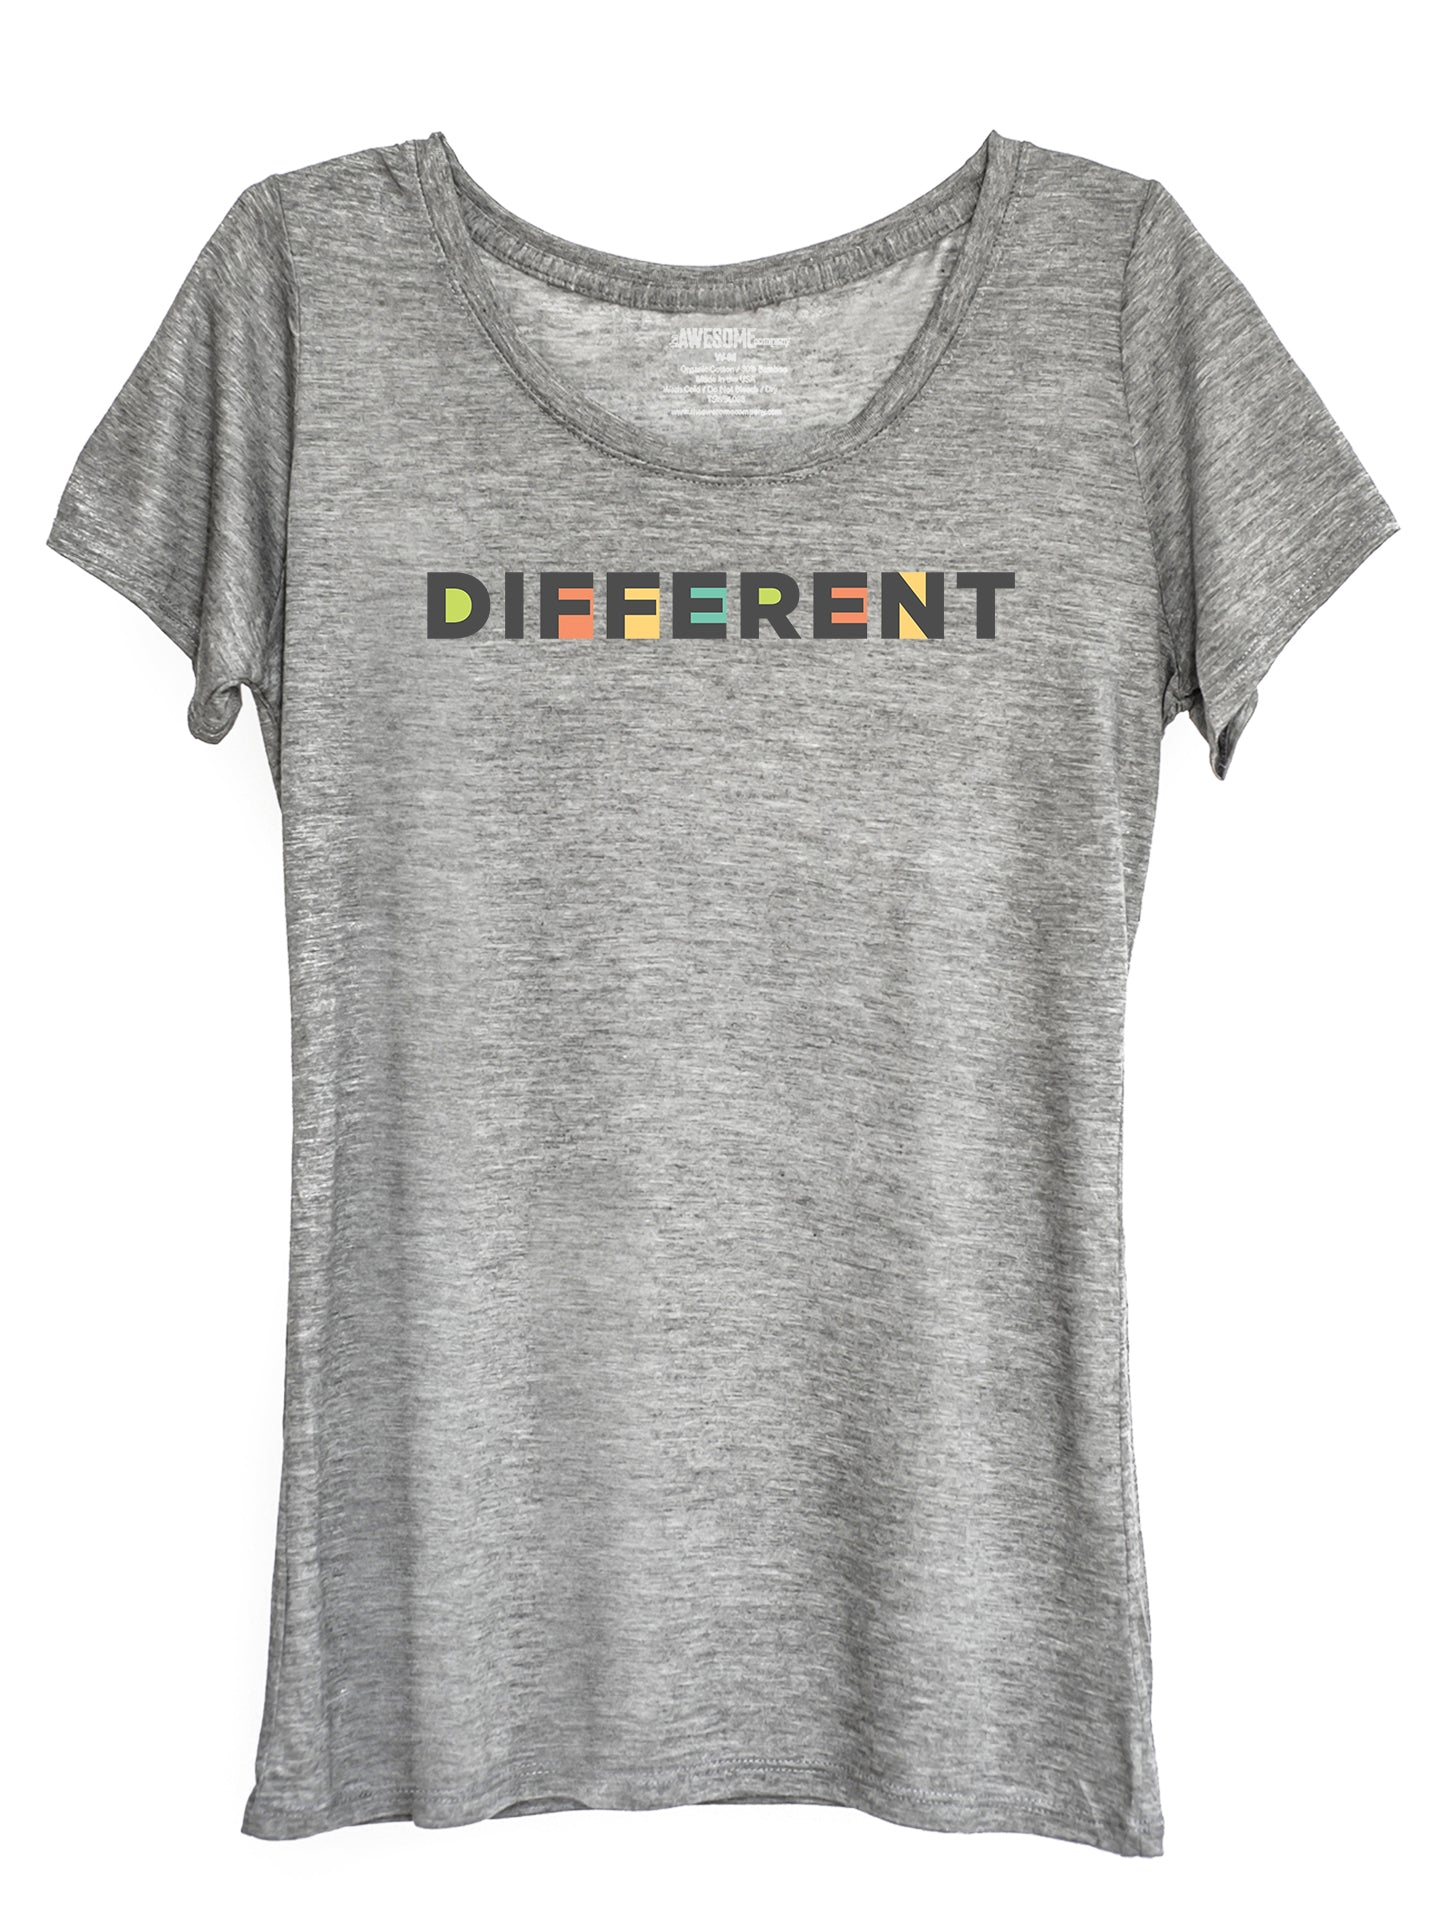 The Power of Words - Women's Tee - DIFFERENT